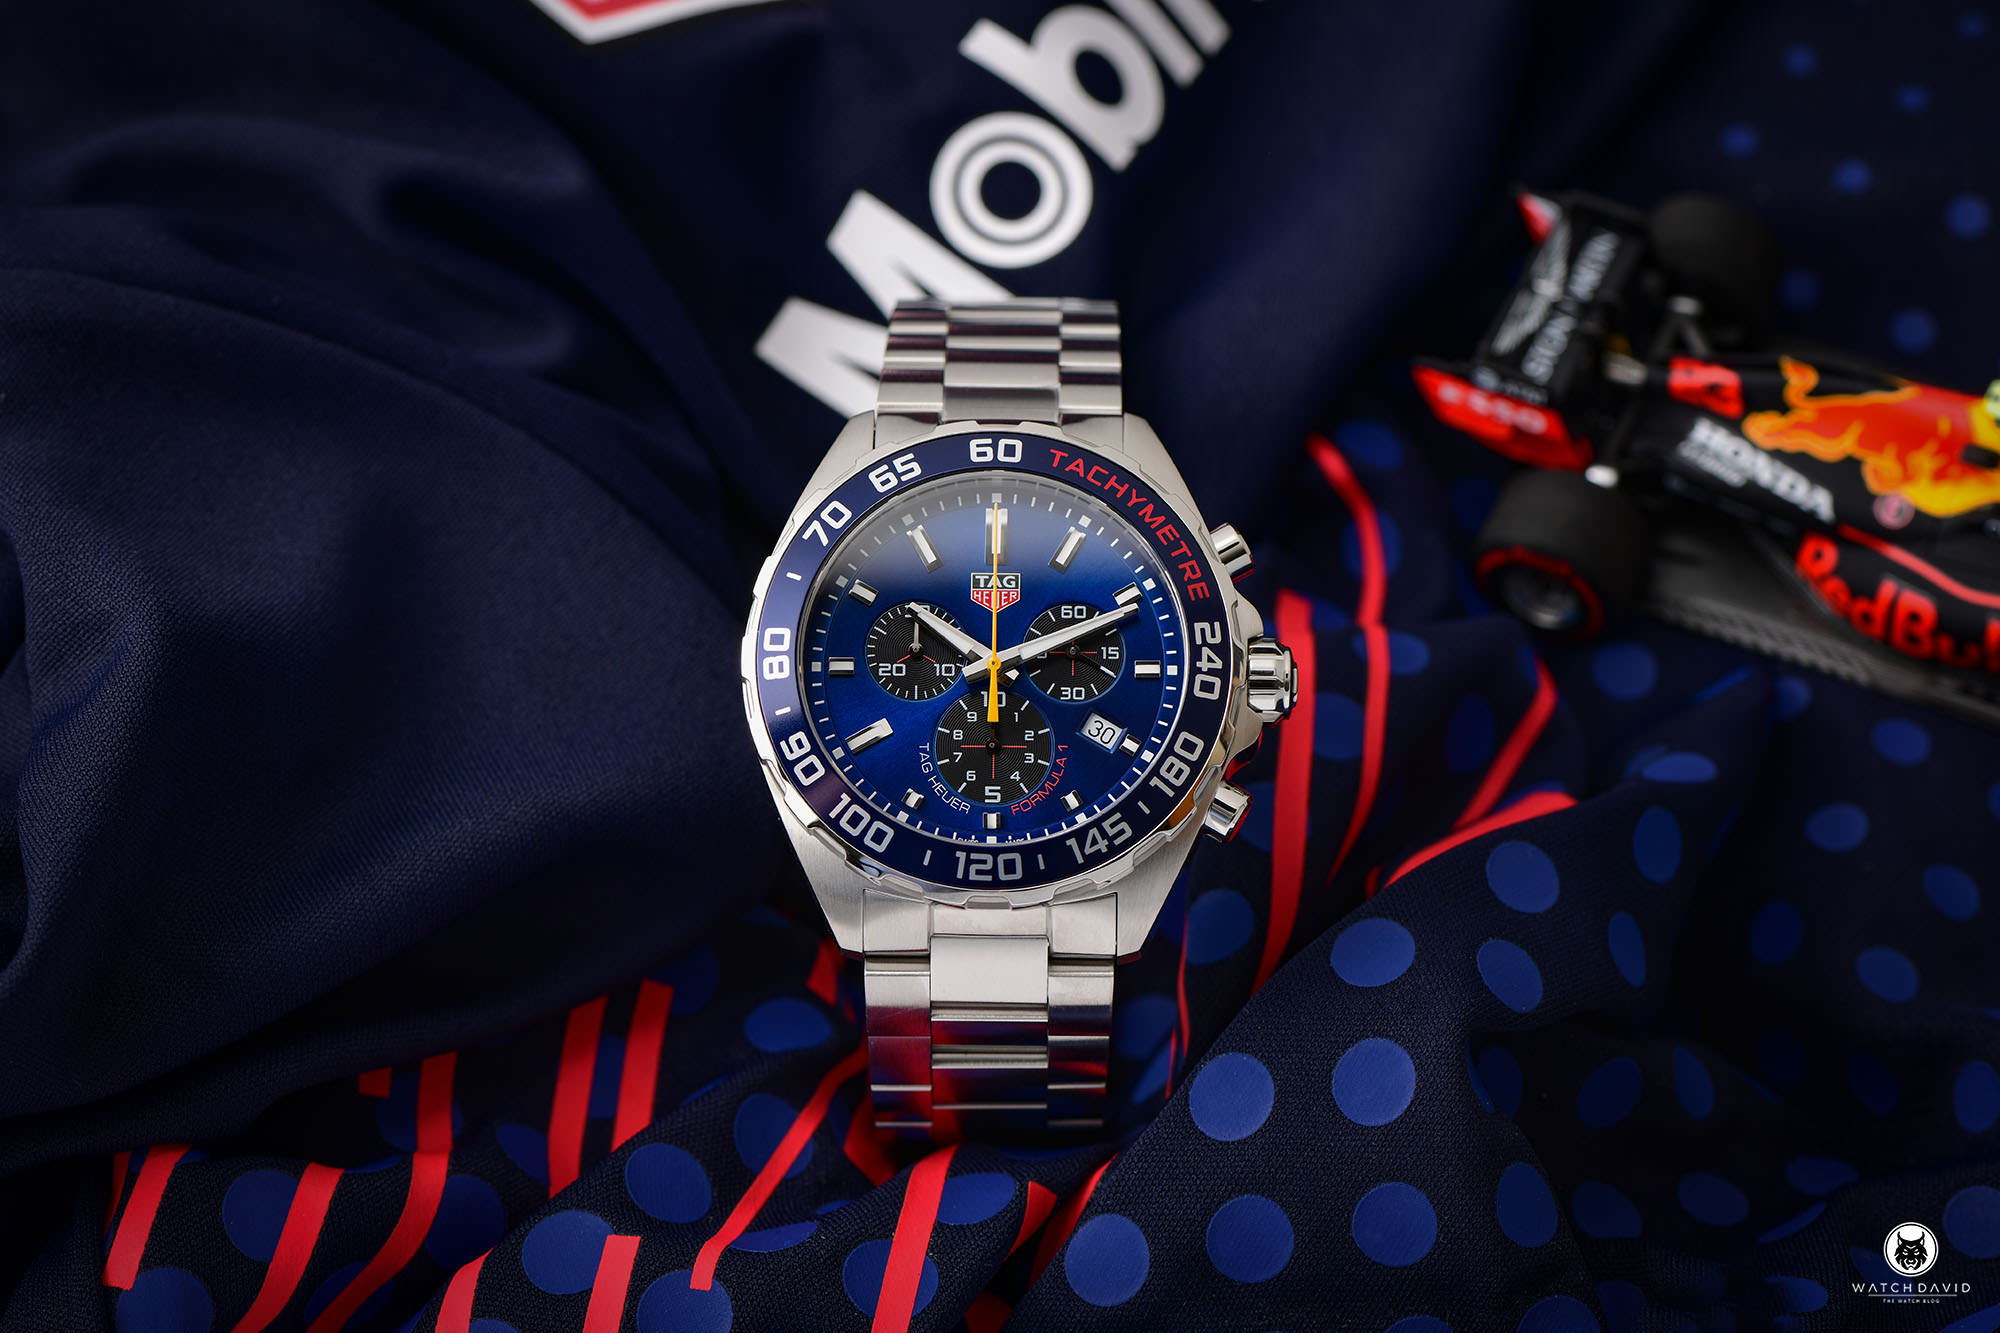 The TAG Heuer Aston Martin Red Bull is part of the Formula 1 collection that the Swiss watchmaker released together with Red Bull Racing. An exciting daily rocker with racer genes or rather something for die-hard Formula 1 fans? I took a closer look at the quartz chronograph for you. Your online store for luxury watches: the Uhrenlounge Nowadays, luxury watches from well-known manufacturers are usually bought on the Internet. Especially here it is important to find a suitable and reputable provider. This is where the Uhrenlounge comes into play. For this review, I once again collaborated with the online portal of Aika Juweliere Dresden, who kindly provided me with the TAG Heuer Aston Martin Red Bull. It's worth a look at the homepage! The Uhrenlounge carries more than twenty selected brands on their site, so everyone should find what they are looking for. You can also order TAG Heuer's Aston Martin Red Bull there. As always, you'll find all the important links at the end of this review! Why you should watch Formula 1 again! At the moment it is worth to watch Formula 1. This is not only due to the world championship battle, which has gained in excitement again in the 2021 season, but also due to the advertising - right, the watch advertising. You can find them on boards, as sponsor stickers on the cars, and last but not least on the wrists of the drivers, pretty much every one of them is equipped with a luxury watch. Watch brands and Formula 1 – that fits!. No wonder, precision, perfection and performance are probably characteristics that are highly appreciated on both sides. In recent years, this has led to more and more manufacturers finding their way into Formula 1. While Rolex, for example, is the main sponsor of the series, most racing teams also have a designated watch partner. Mercedes IWC, Ferrari and McLaren Richard Mille and four-time world champion Red Bull TAG Heuer. The traditional Swiss company and the Austrian racing team have been cooperating for seve